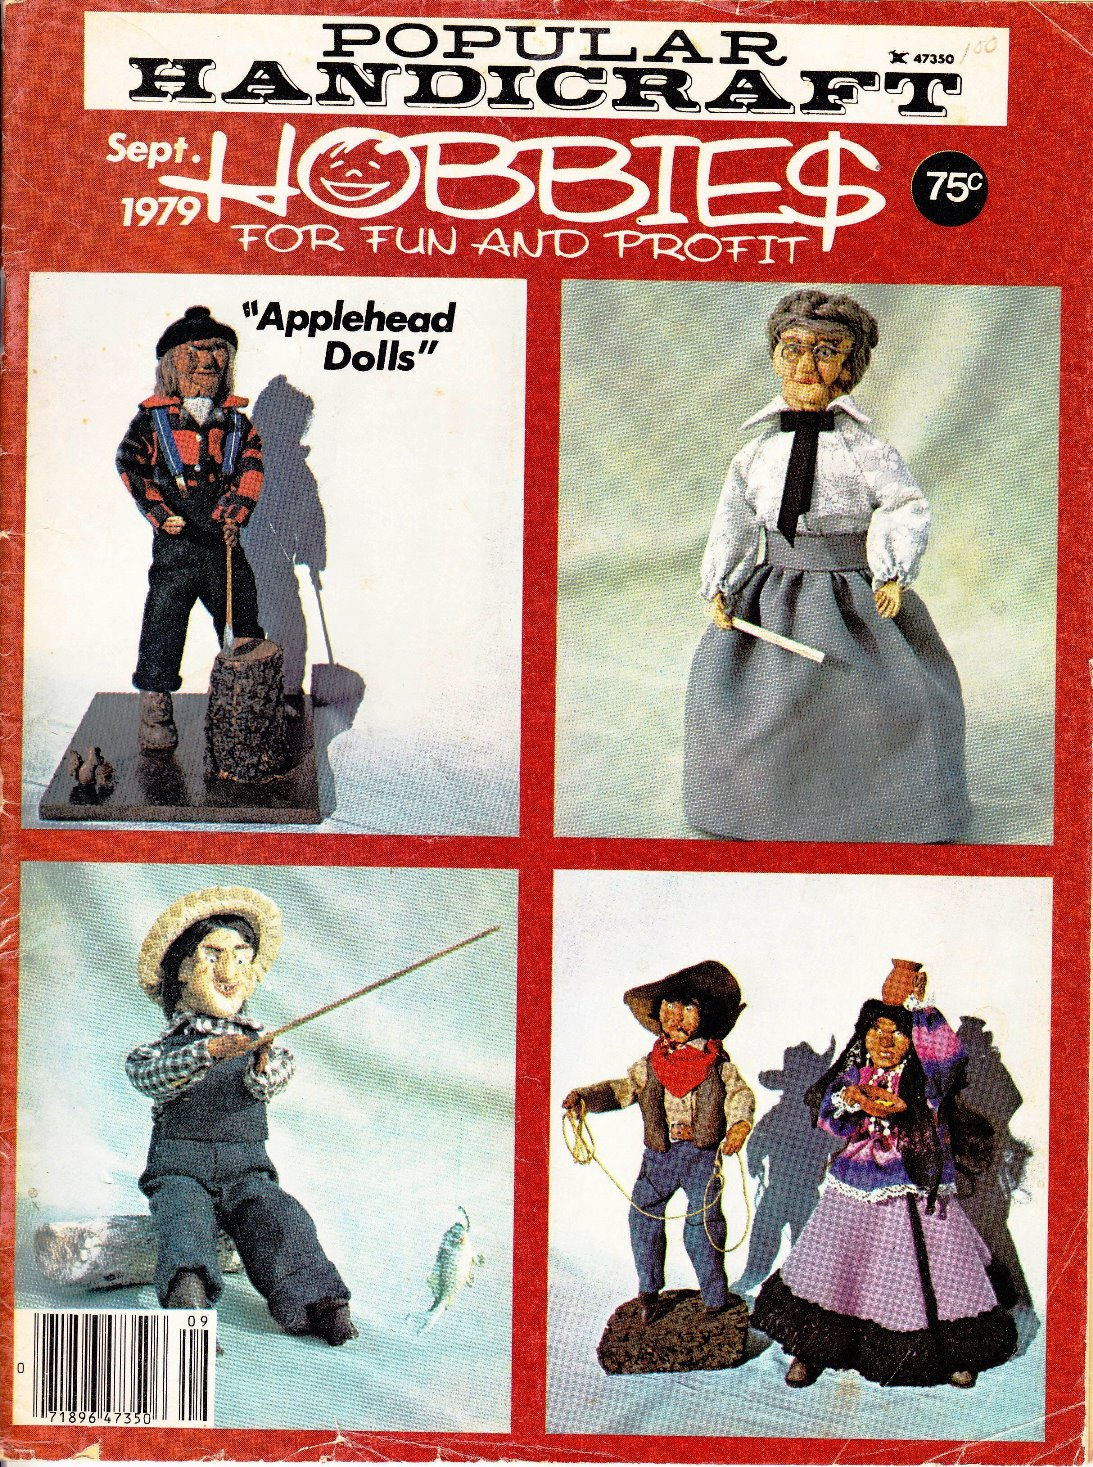 Hobby cover featuring applehead dolls